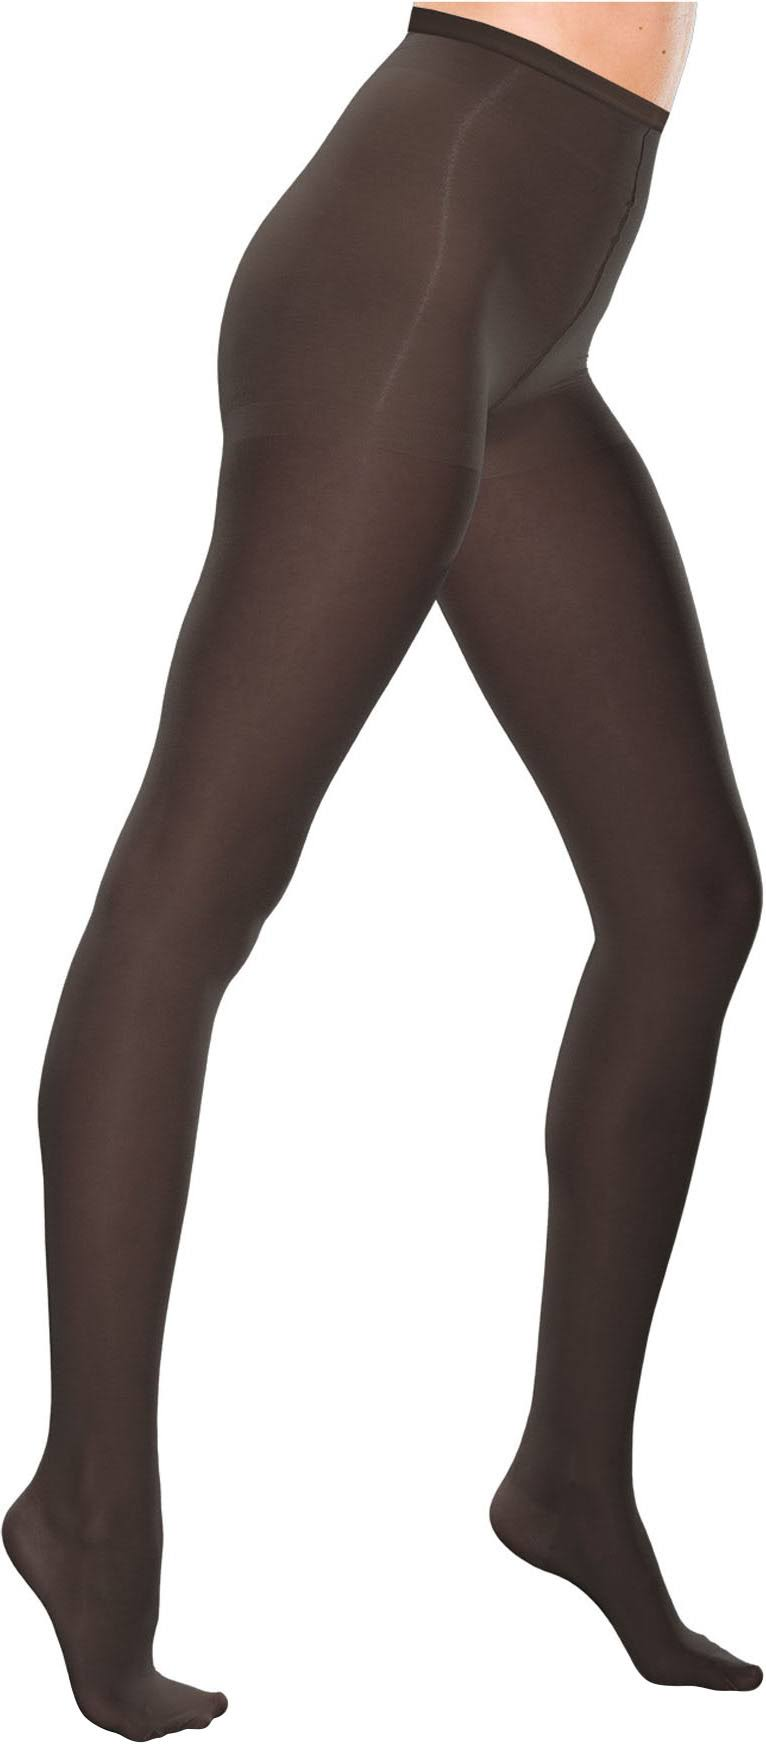 Therafirm Women's 15-20Hg Pantyhose - Black